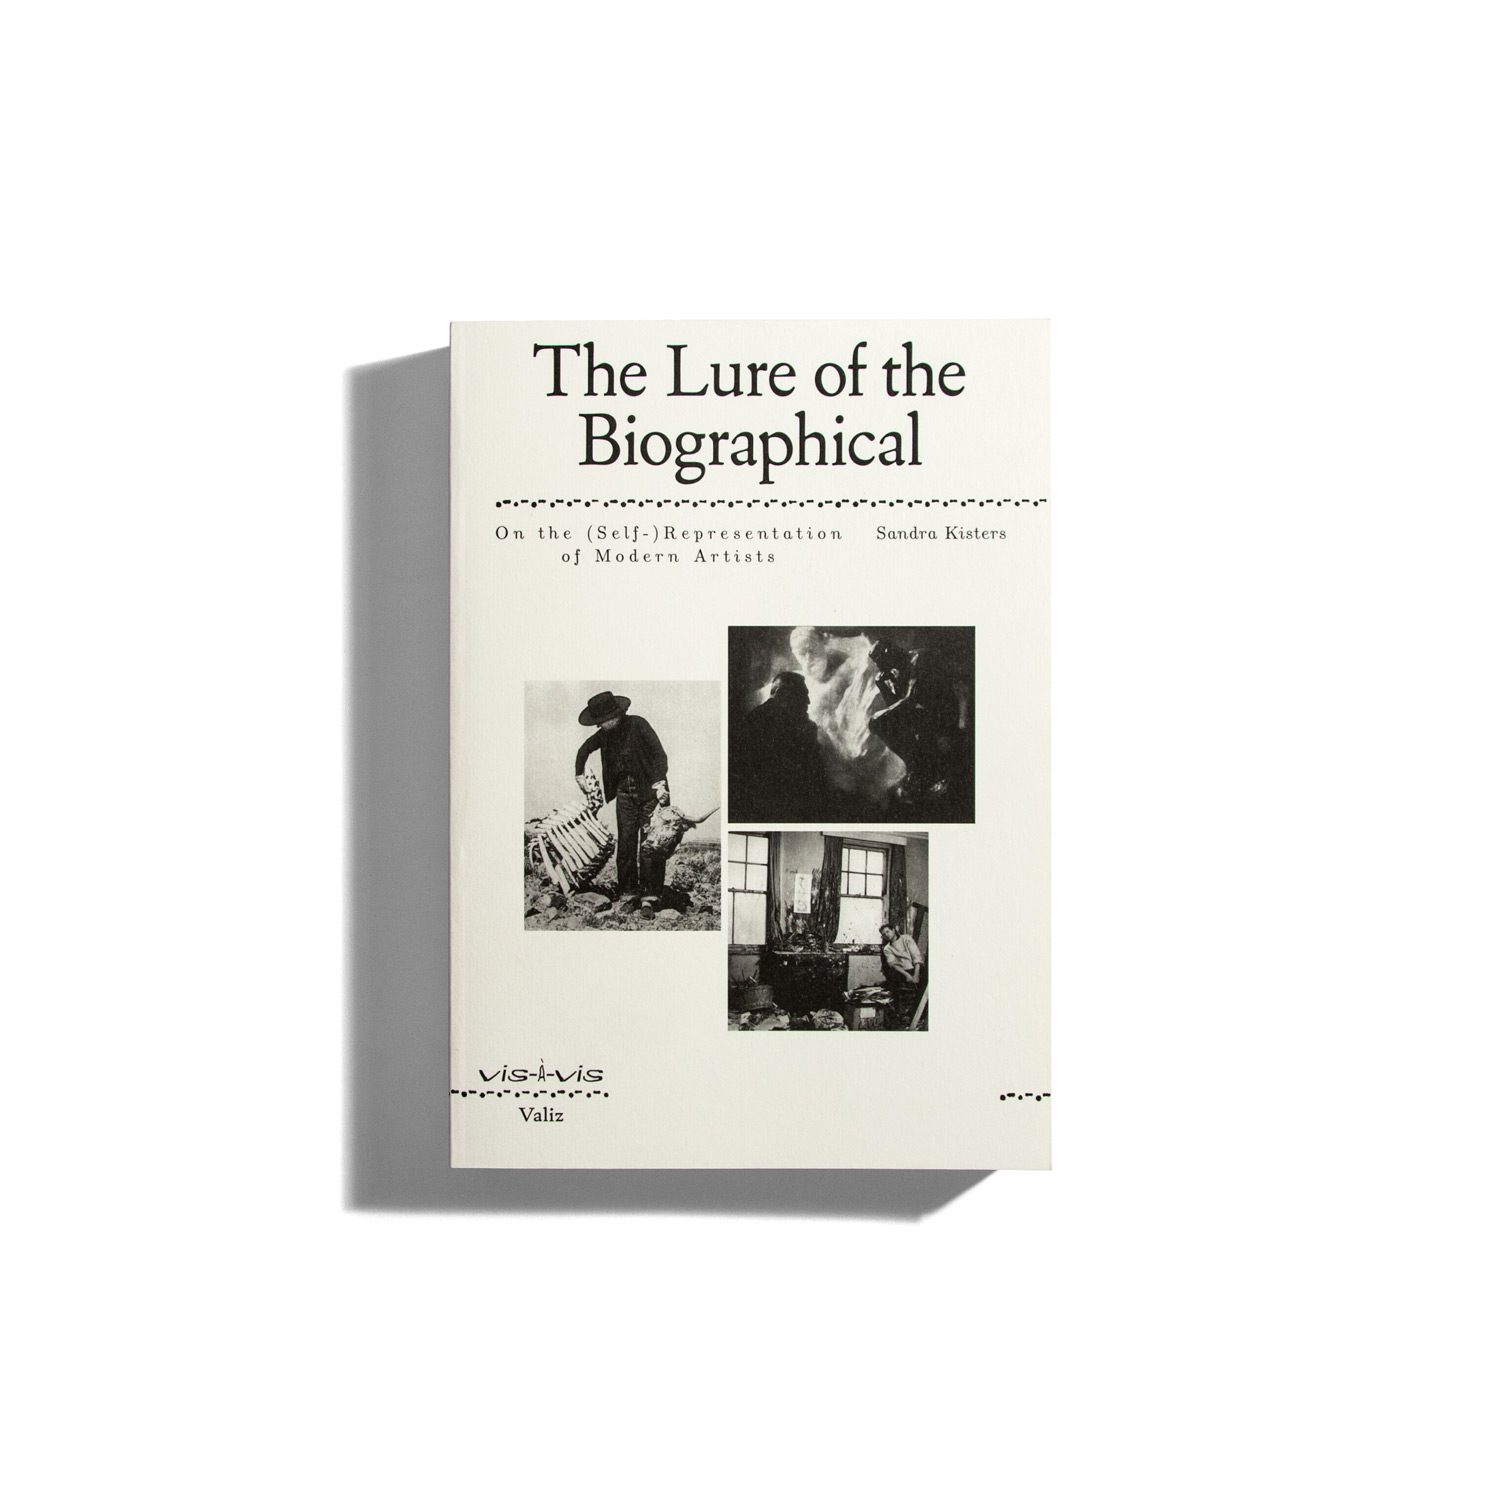 The Lure of the Biographical